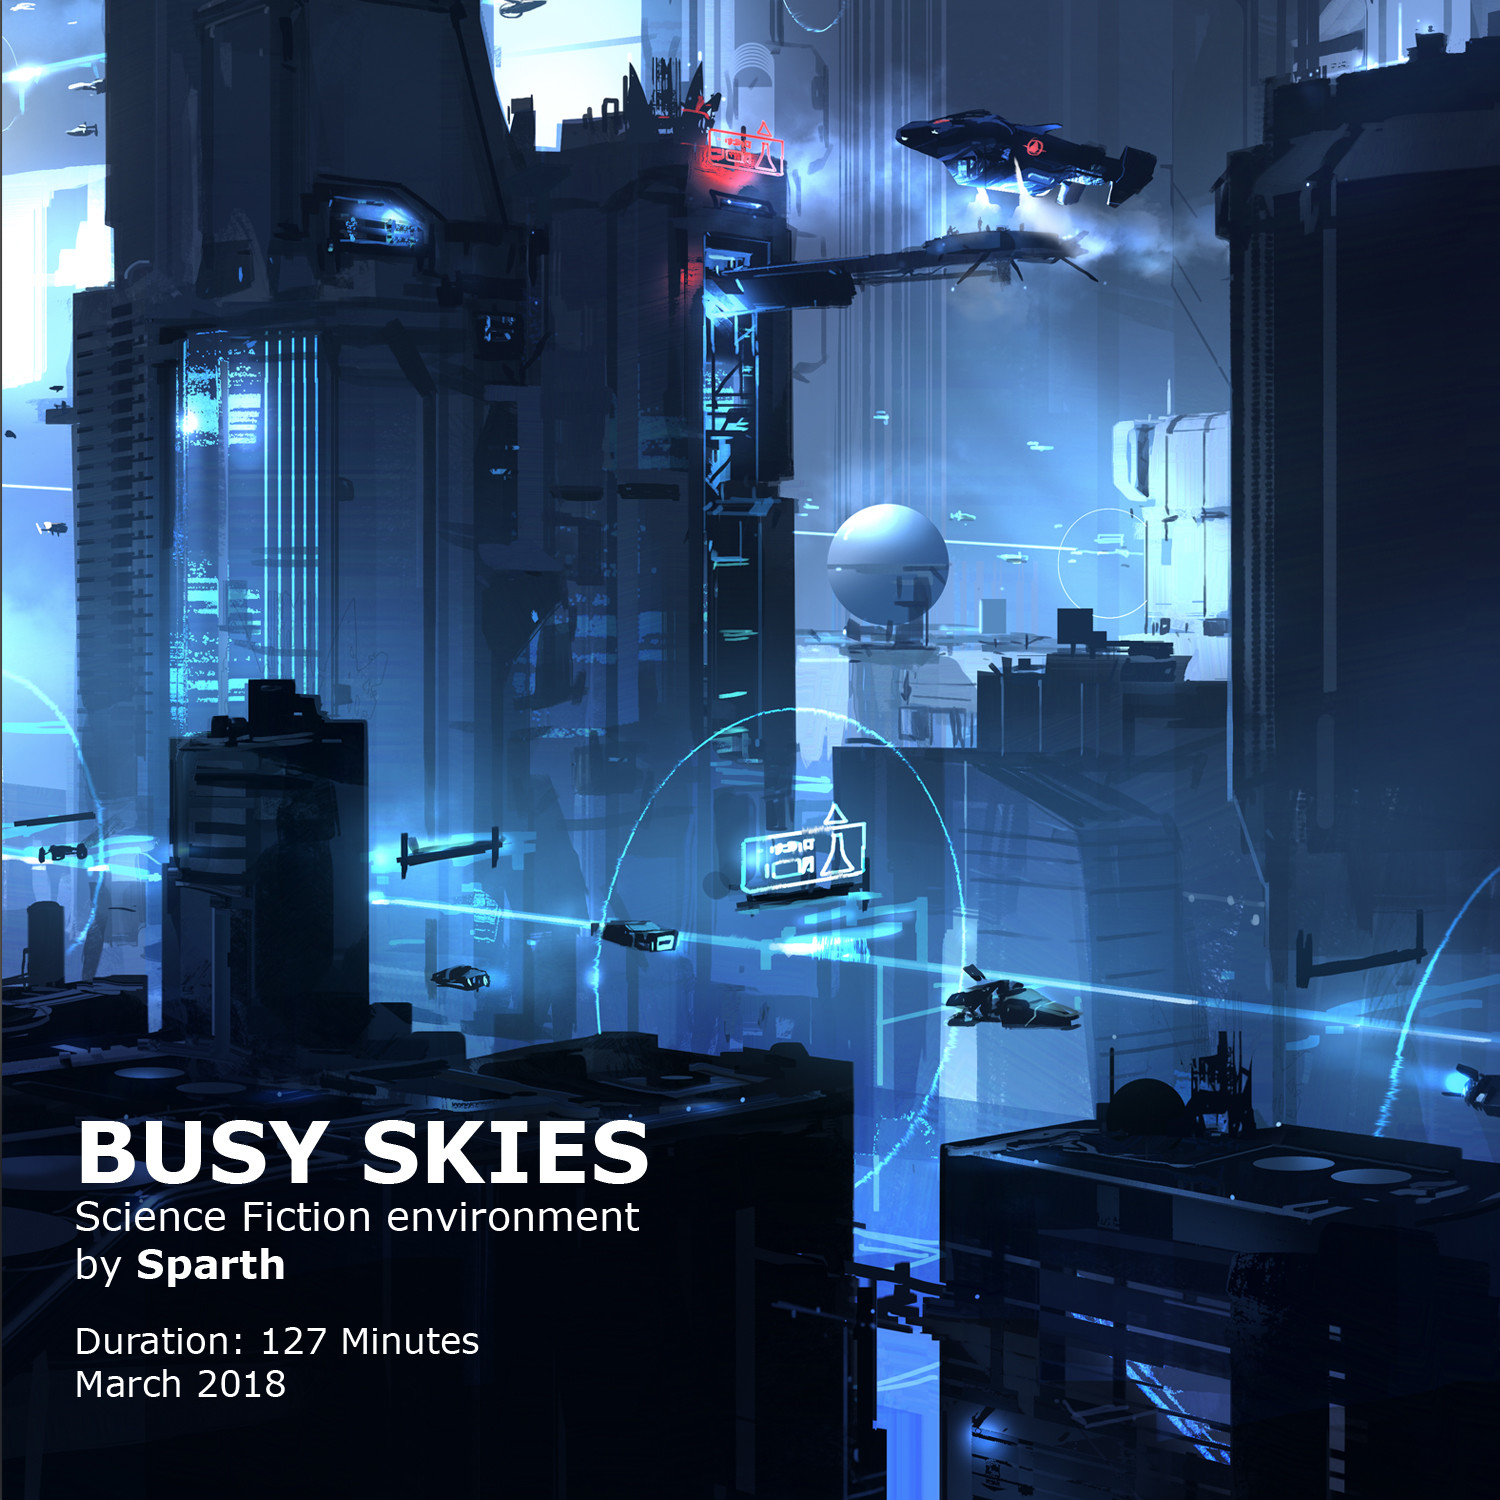 Sparth busy skies